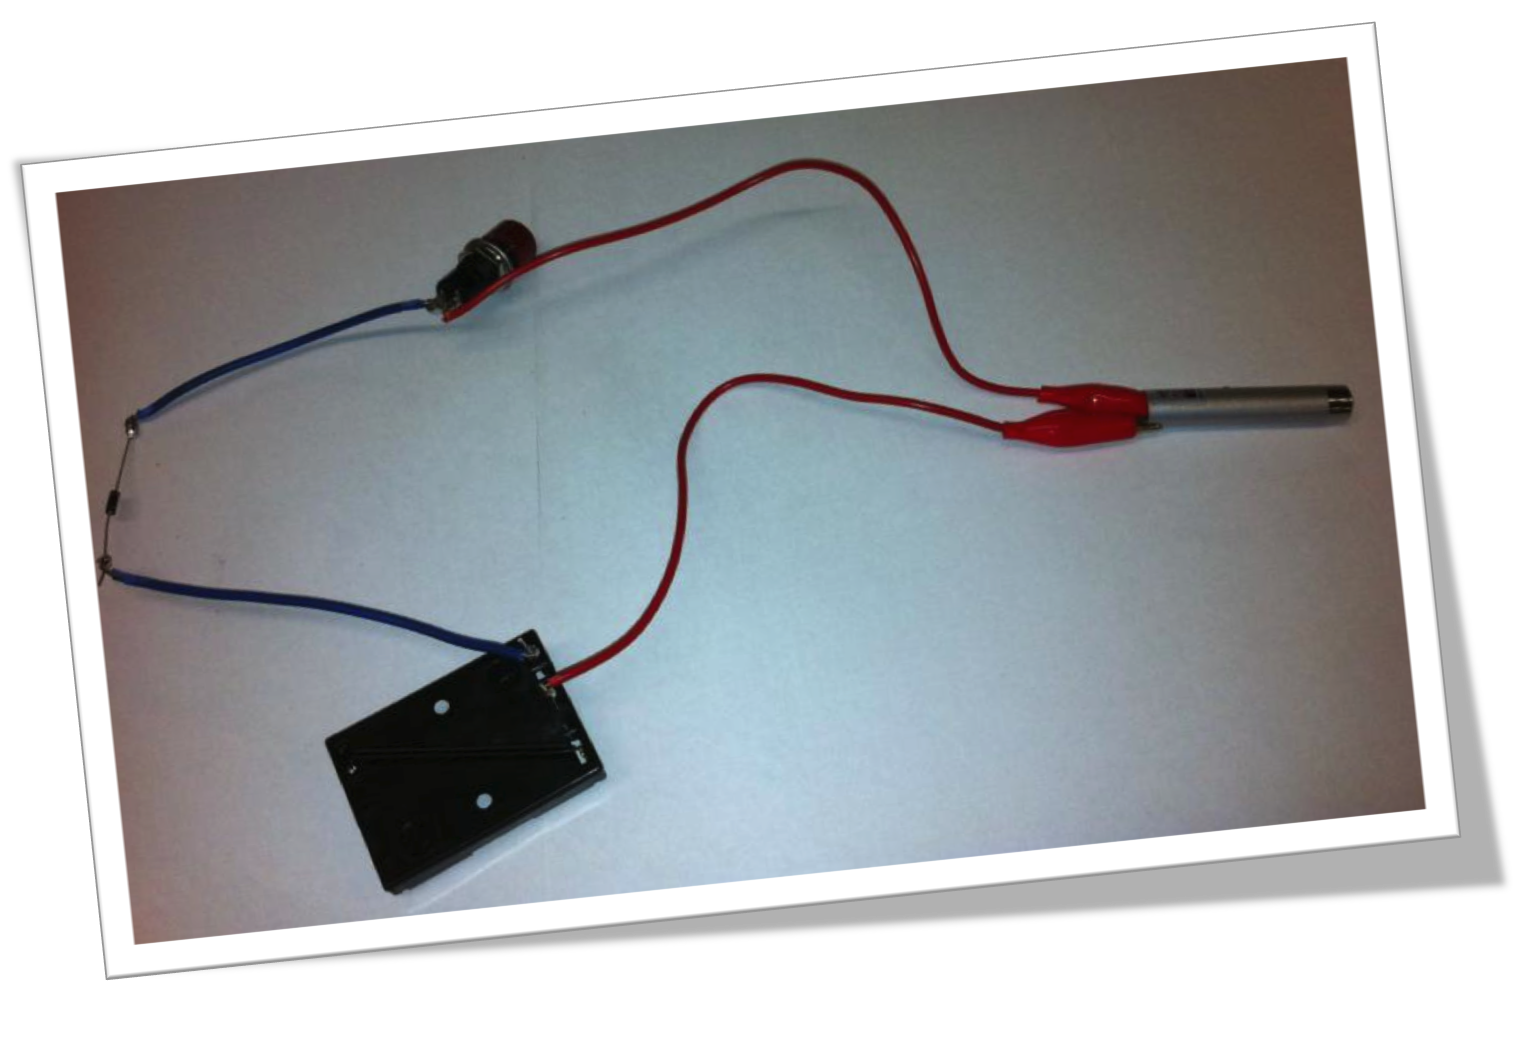 Make Your Own Modulated Laser Pen And Receiver Then Get